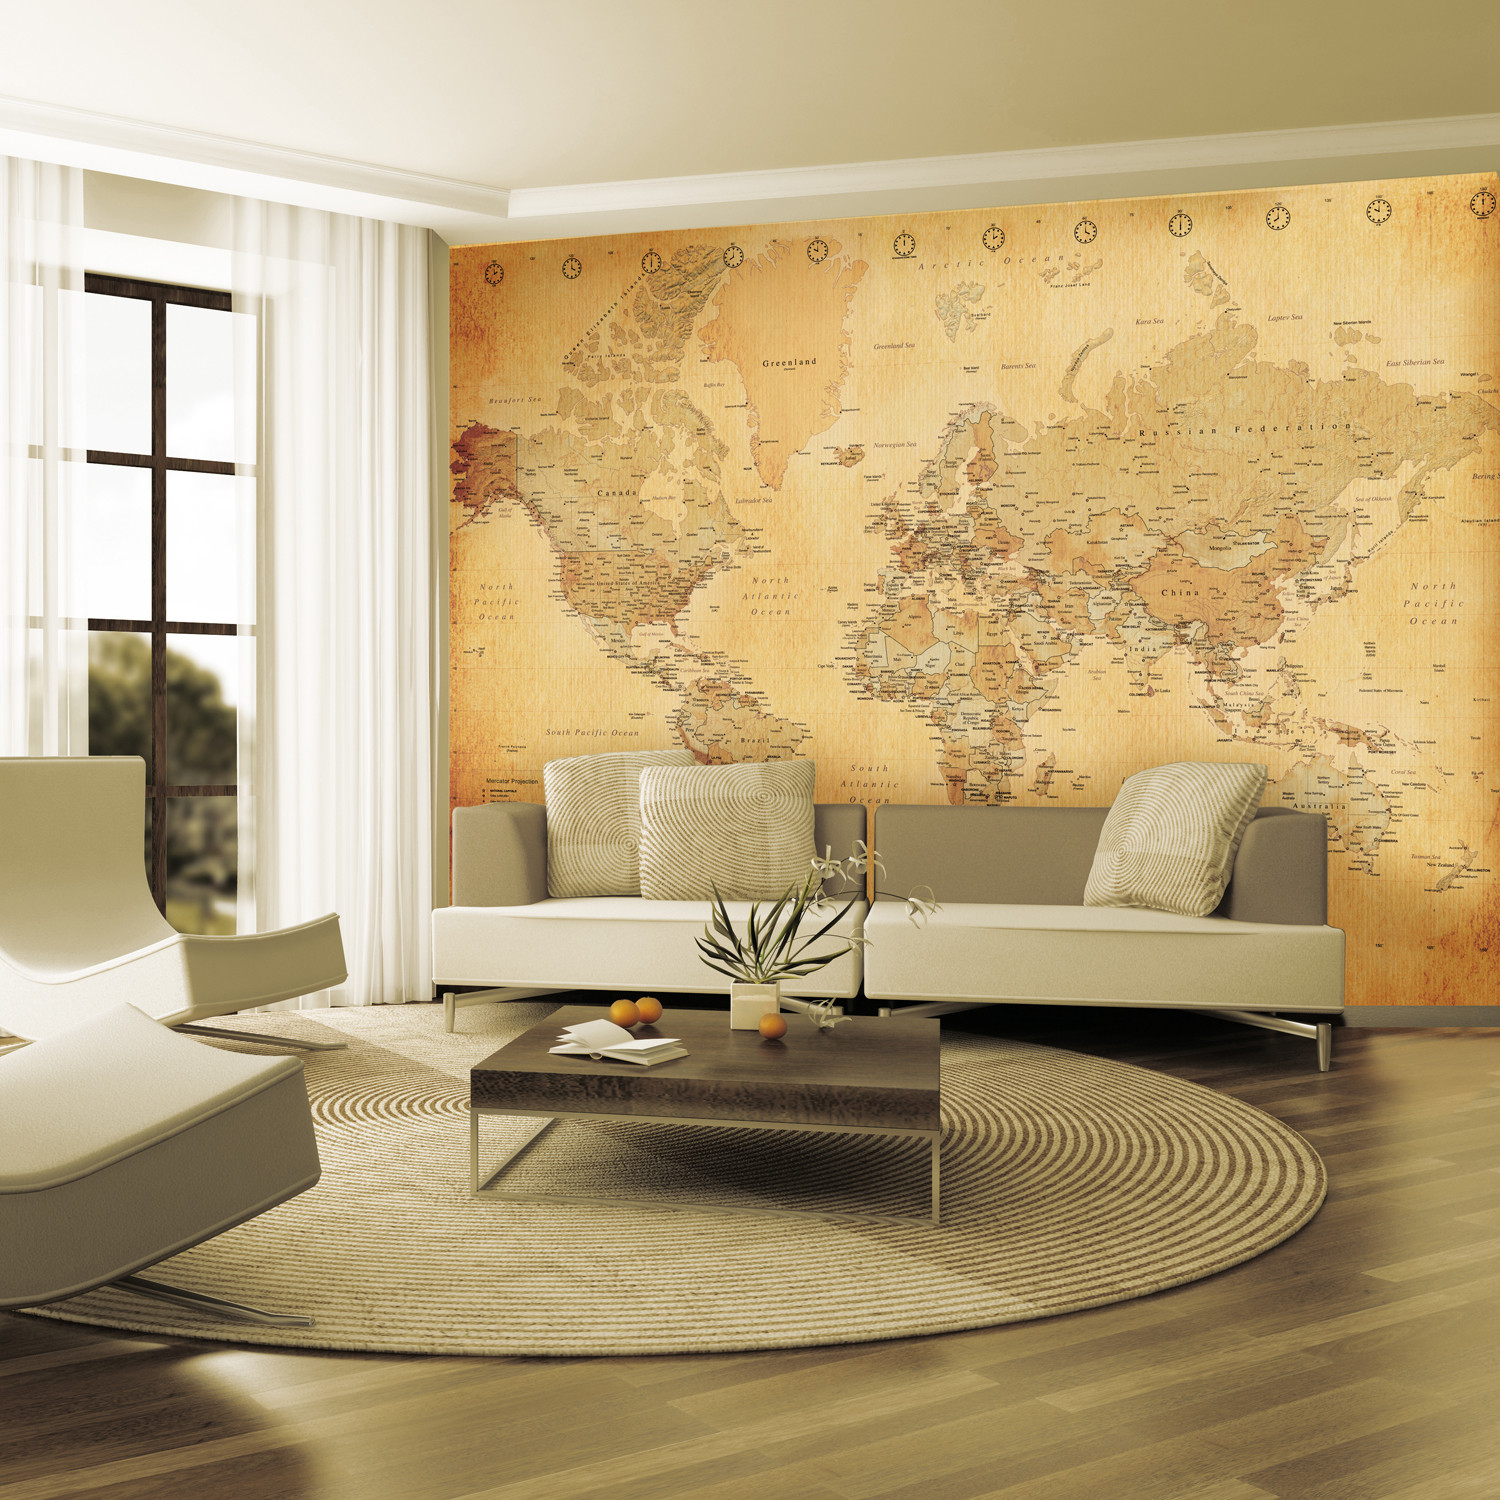 Vintage world map 1 wall murals touch of modern for Wallpaper of home wall